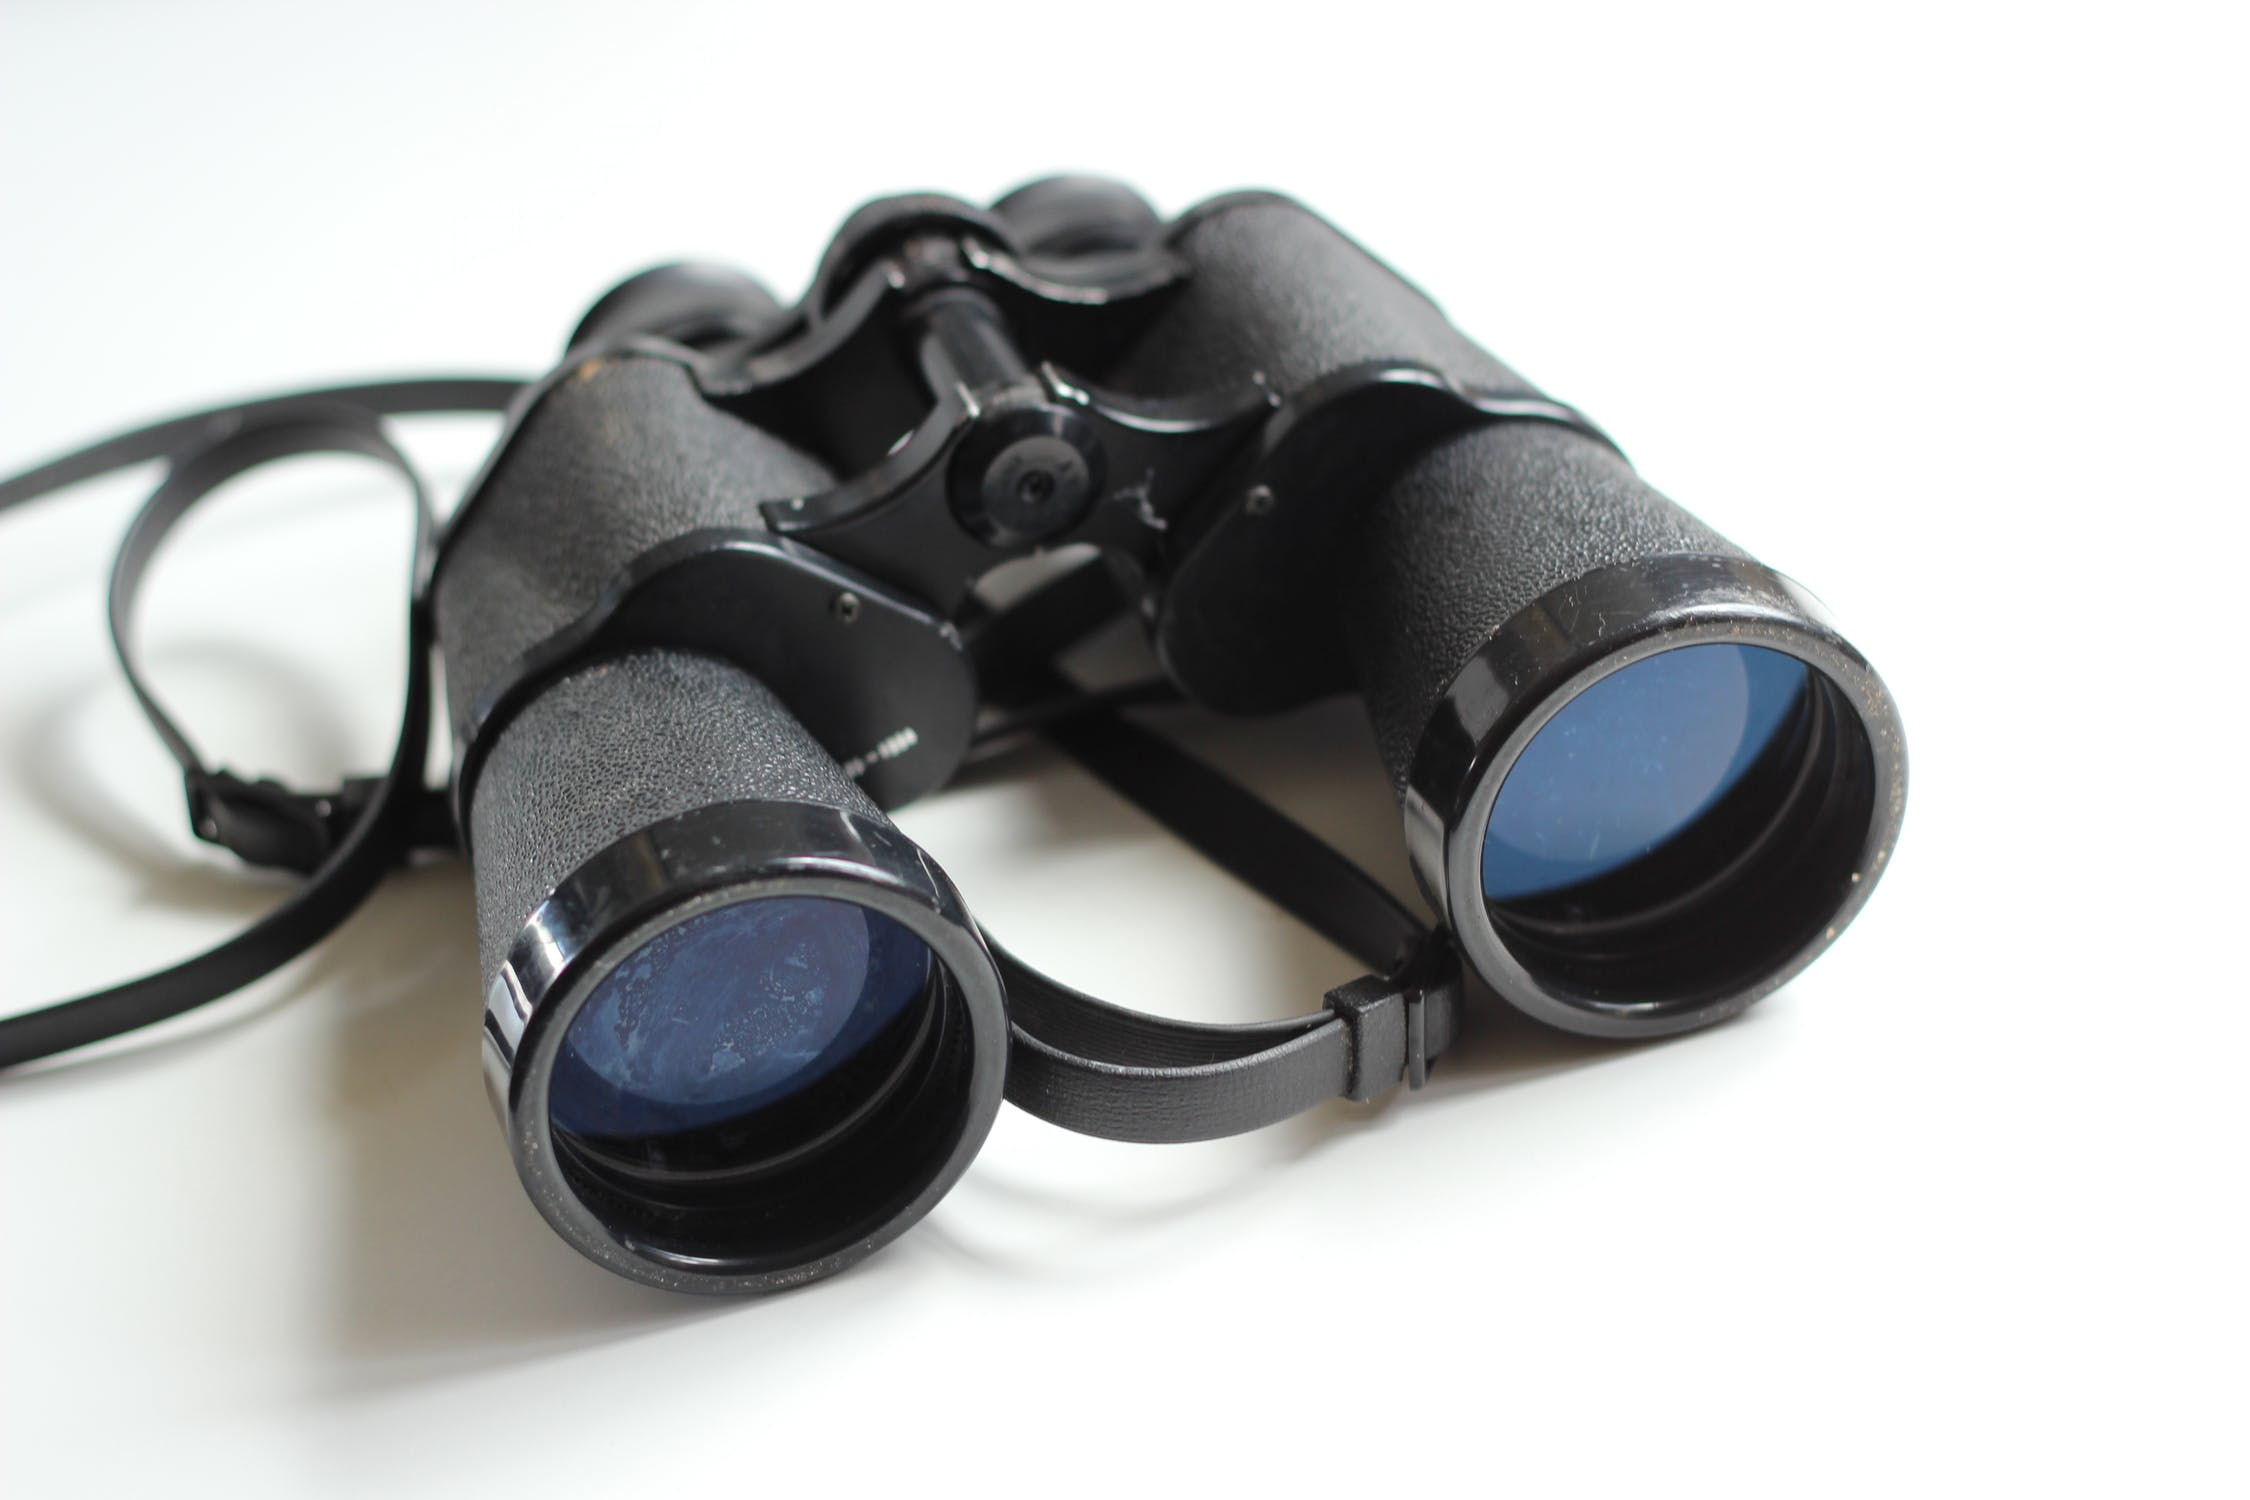 Binoculars - for spotting things others can't.